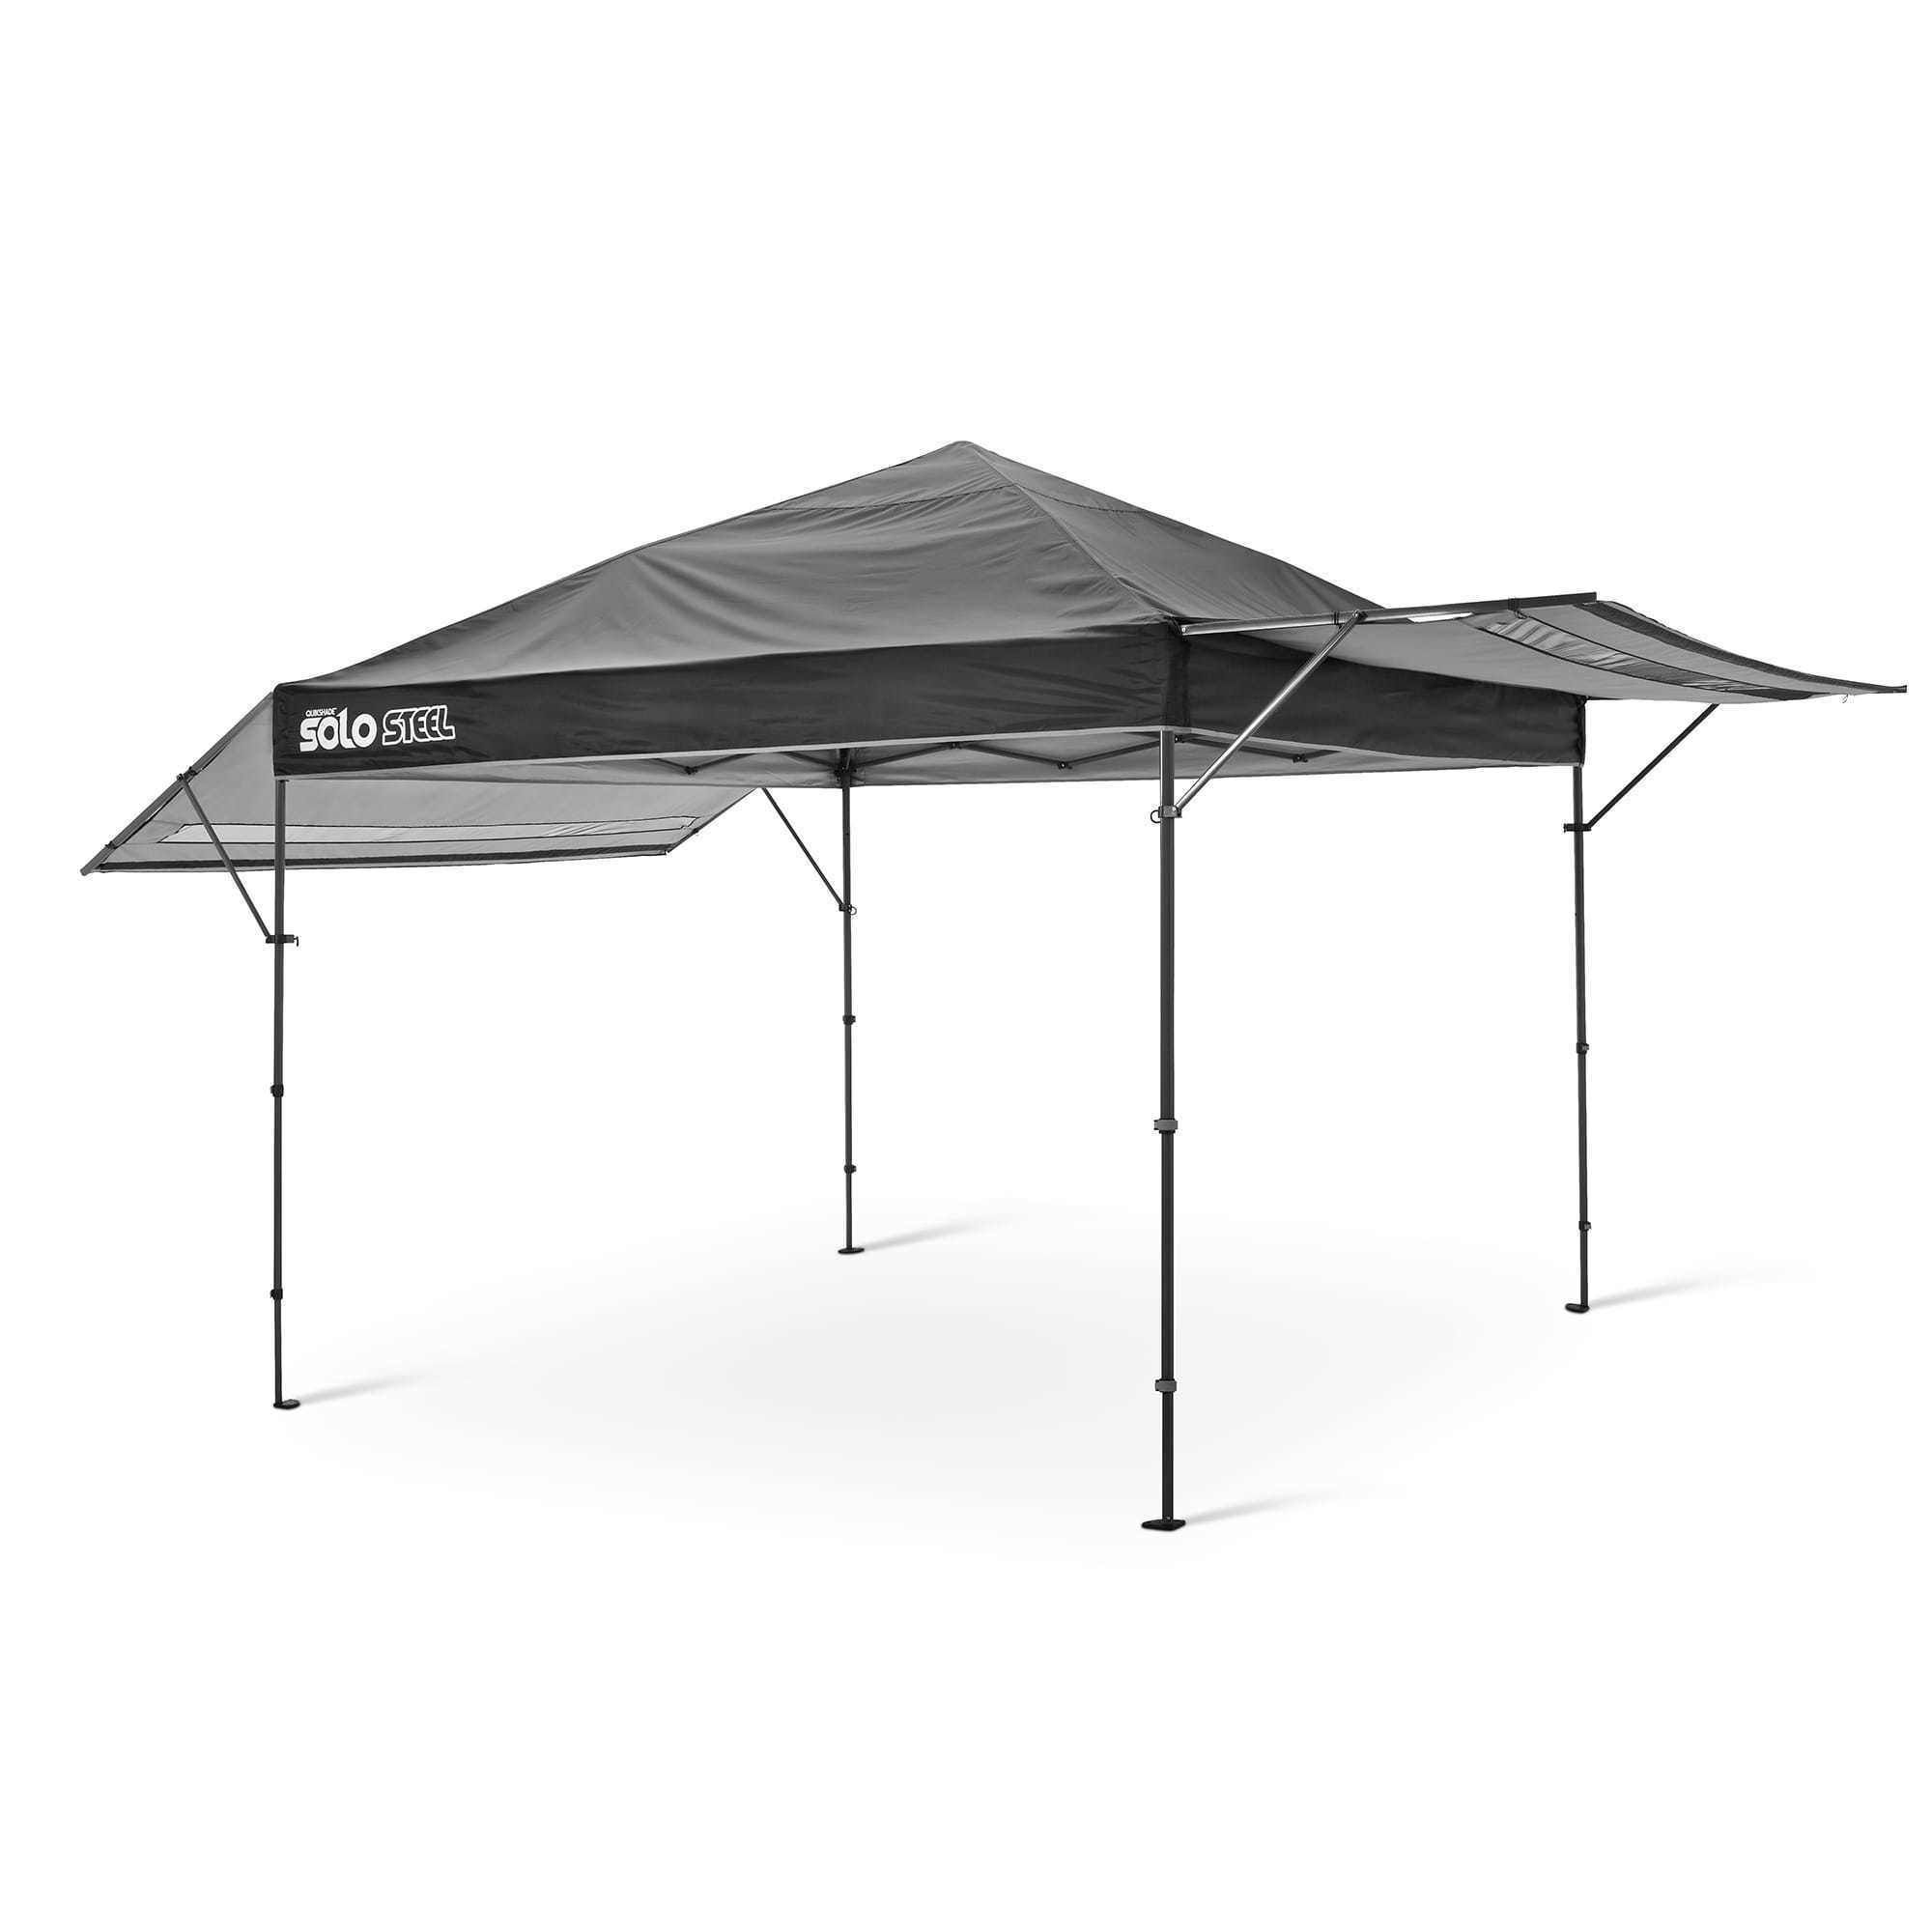 Shop Quik Shade Solo Steel 170 Compact Instant Canopy Overstock 18689930